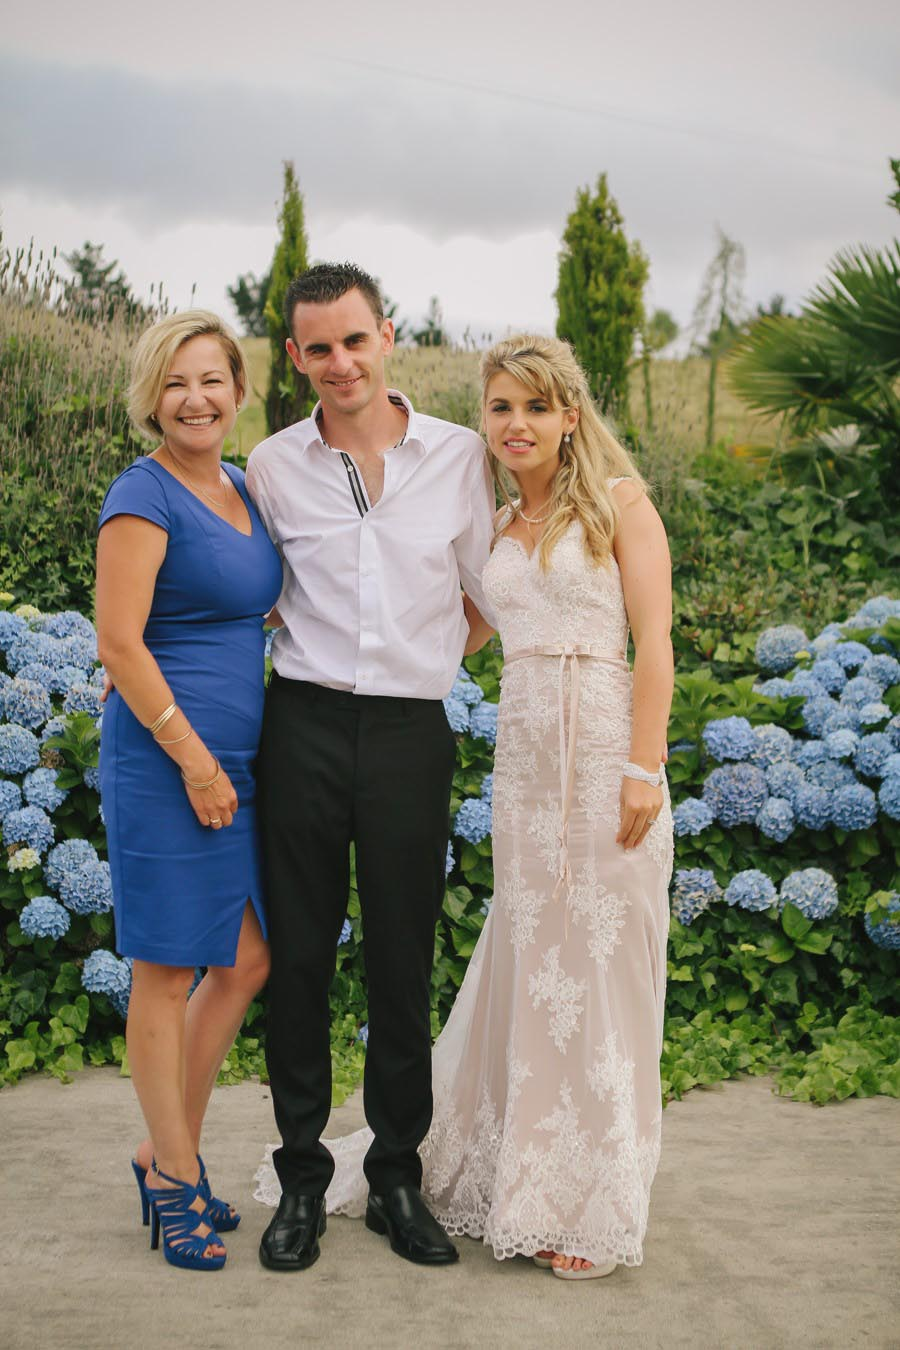 silverdale_wedding_nz_photographer-255